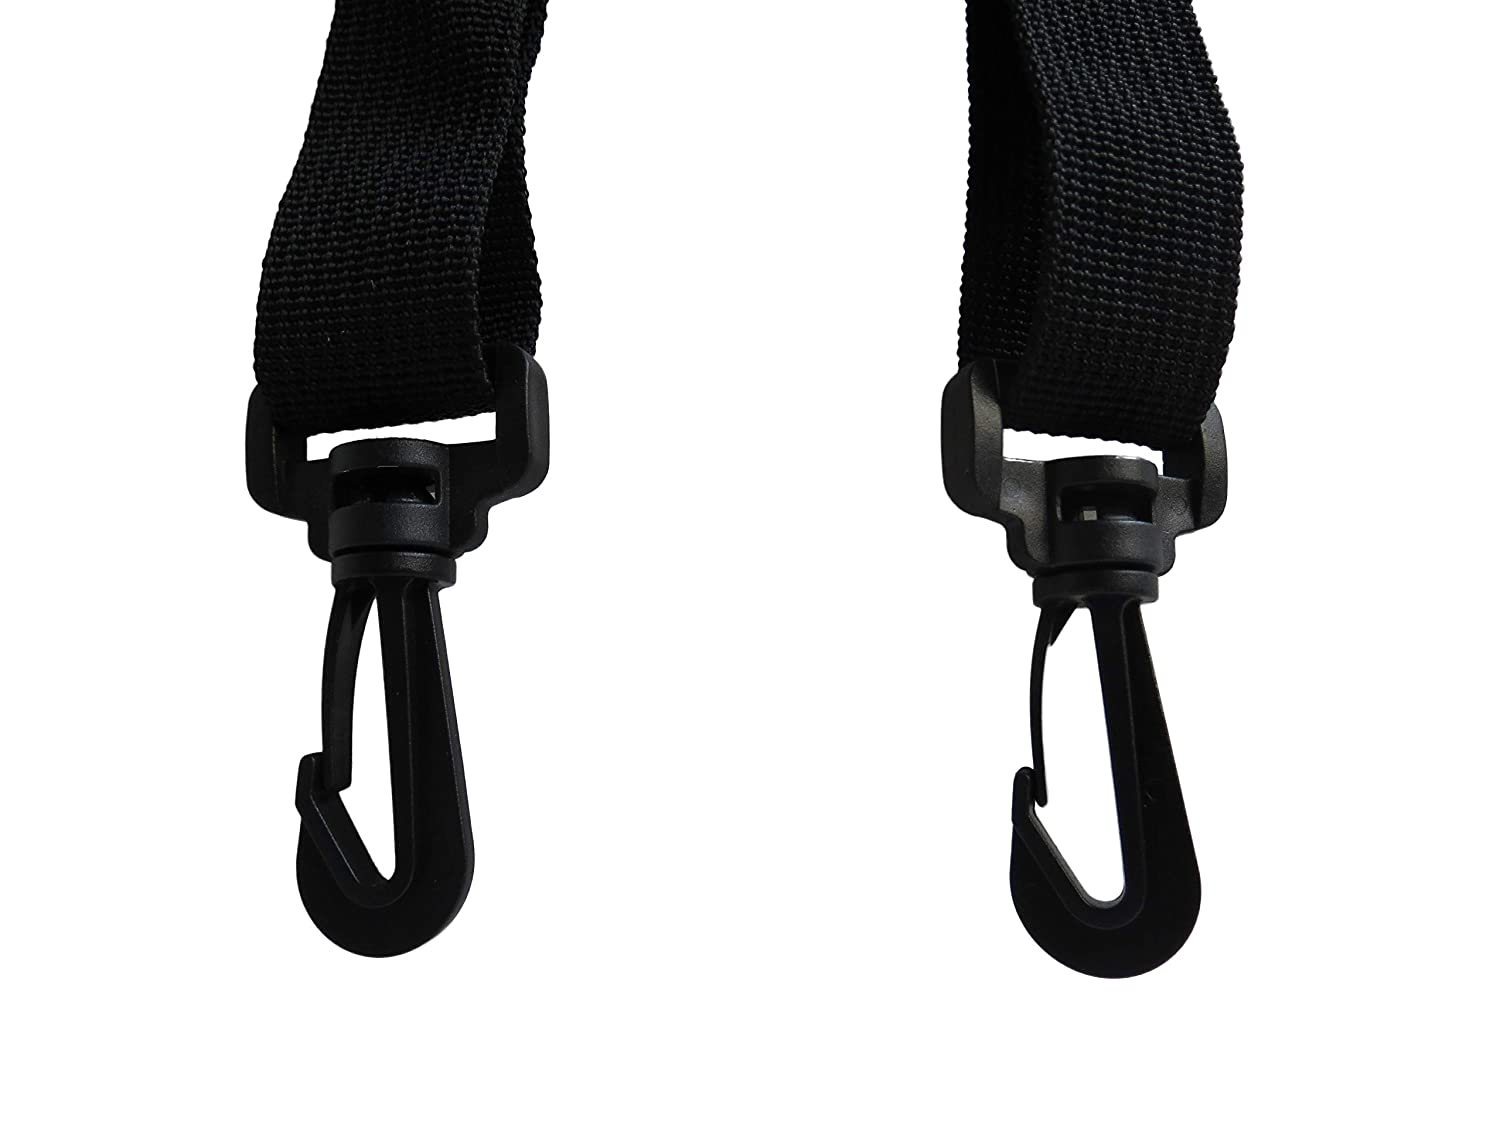 Straps w Hook Clips A Stroller Seat Shoulder Safety Harness Straps and Hook Clips for BOB Jogger Baby Toddler Child Strollers Accessories Replacement Parts